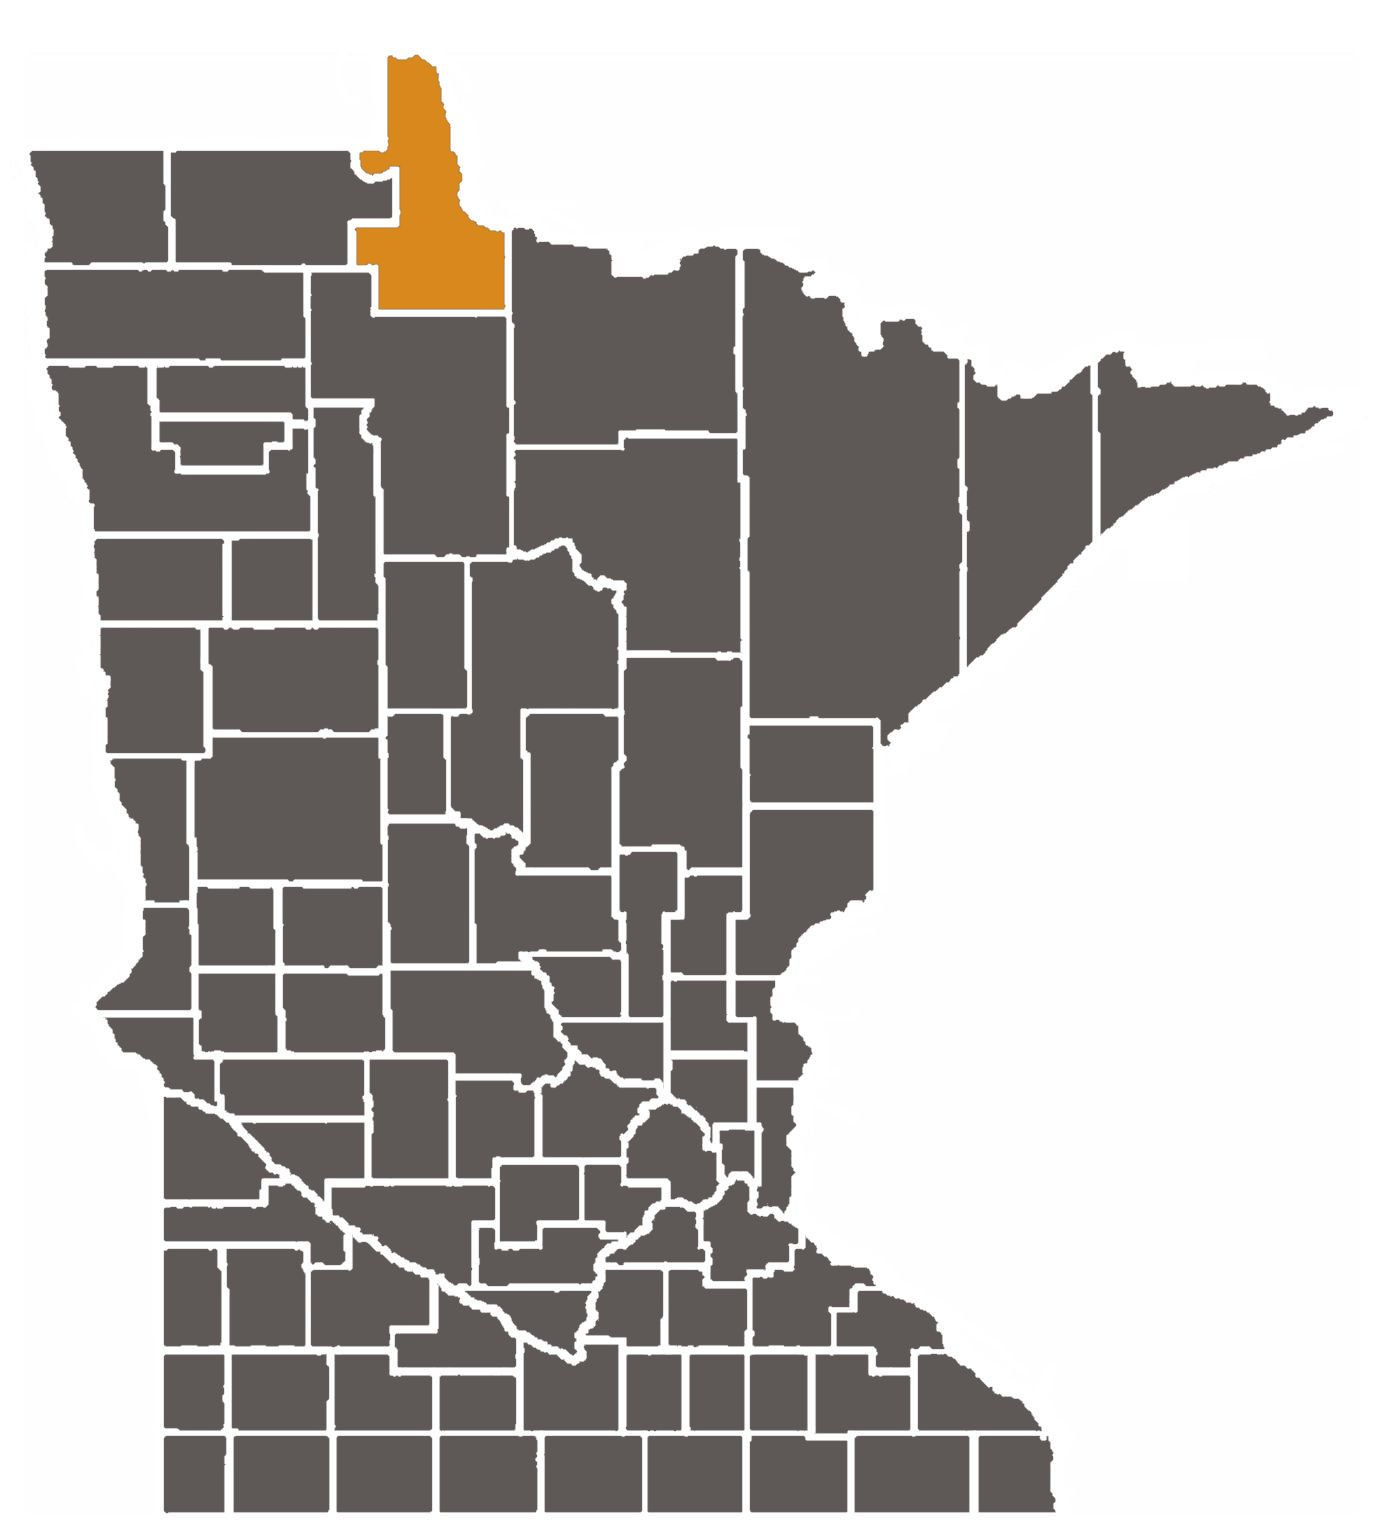 Minnesota map with Lake of the Woods County highlighted.